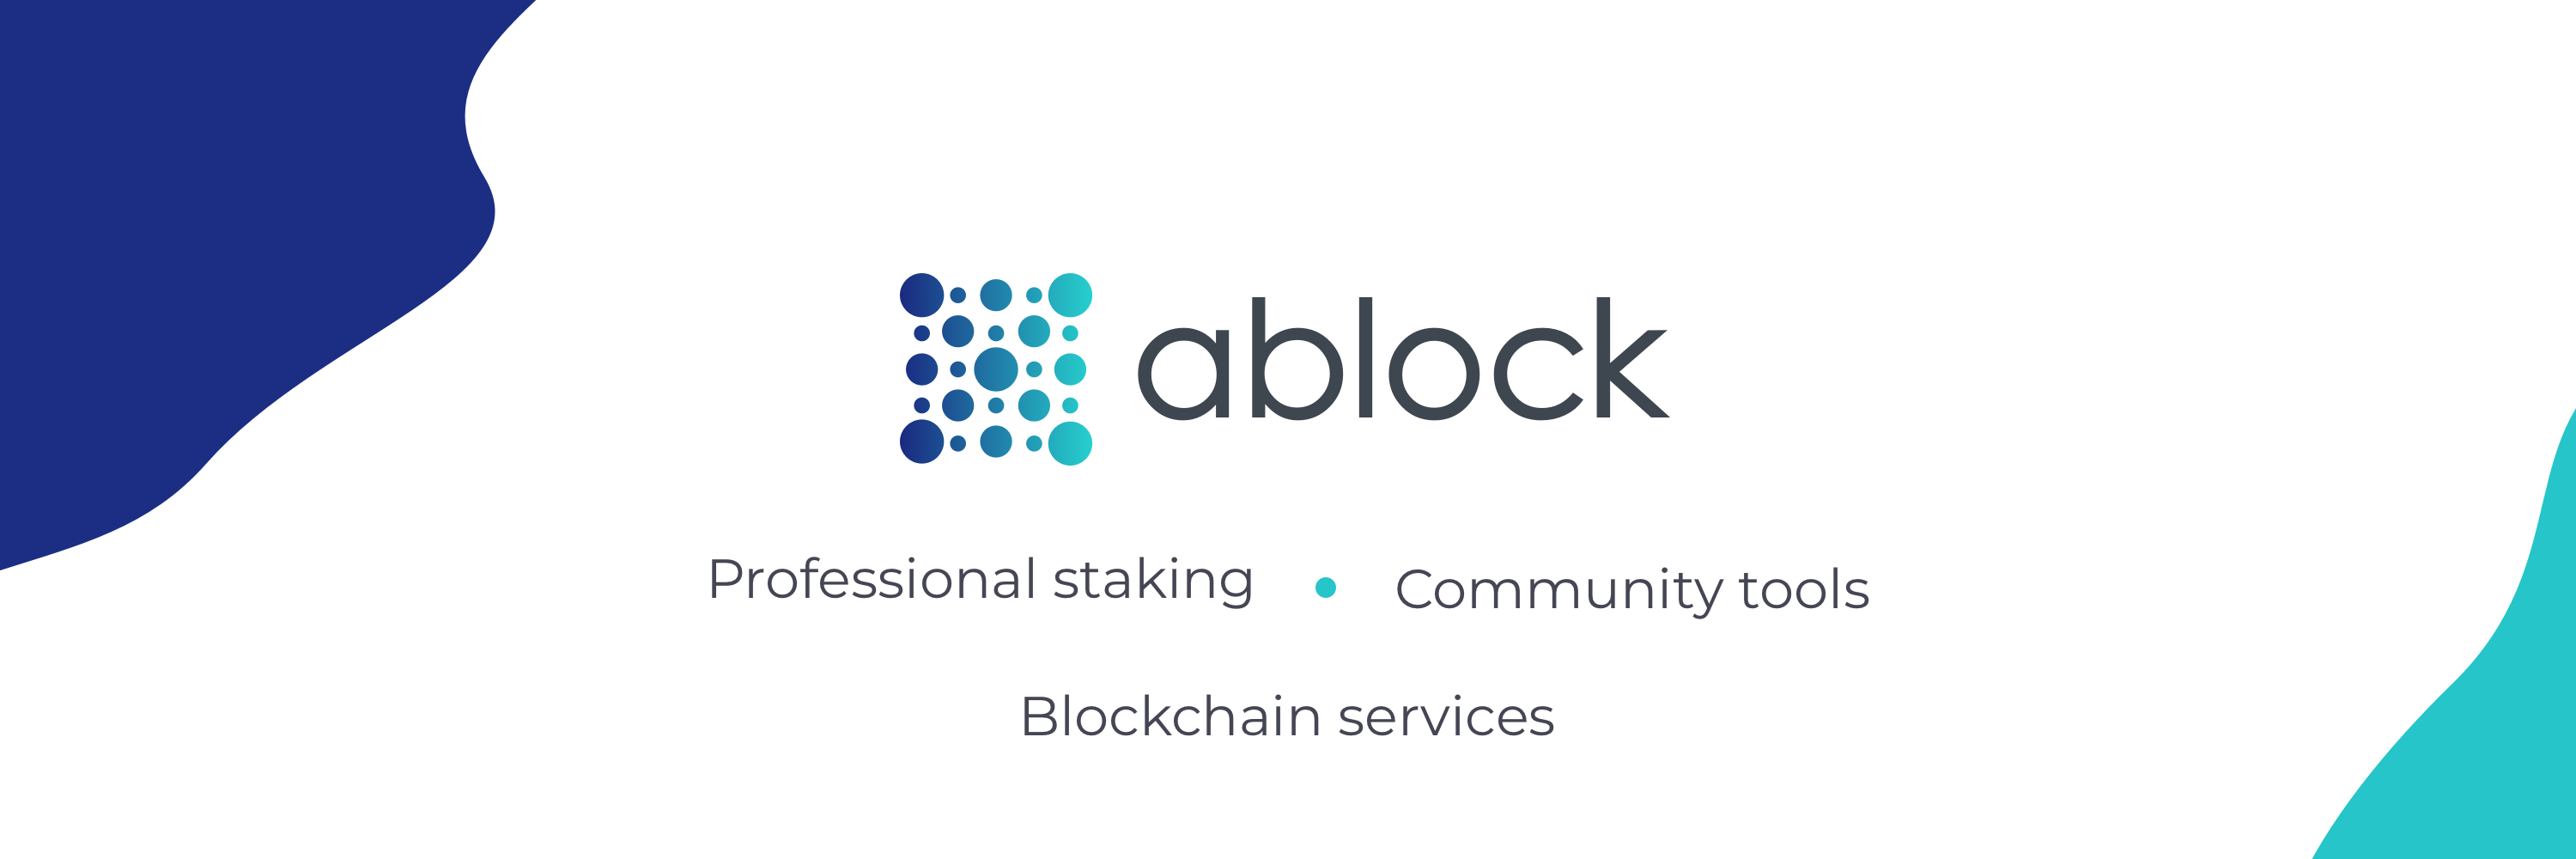 ablock logo and services